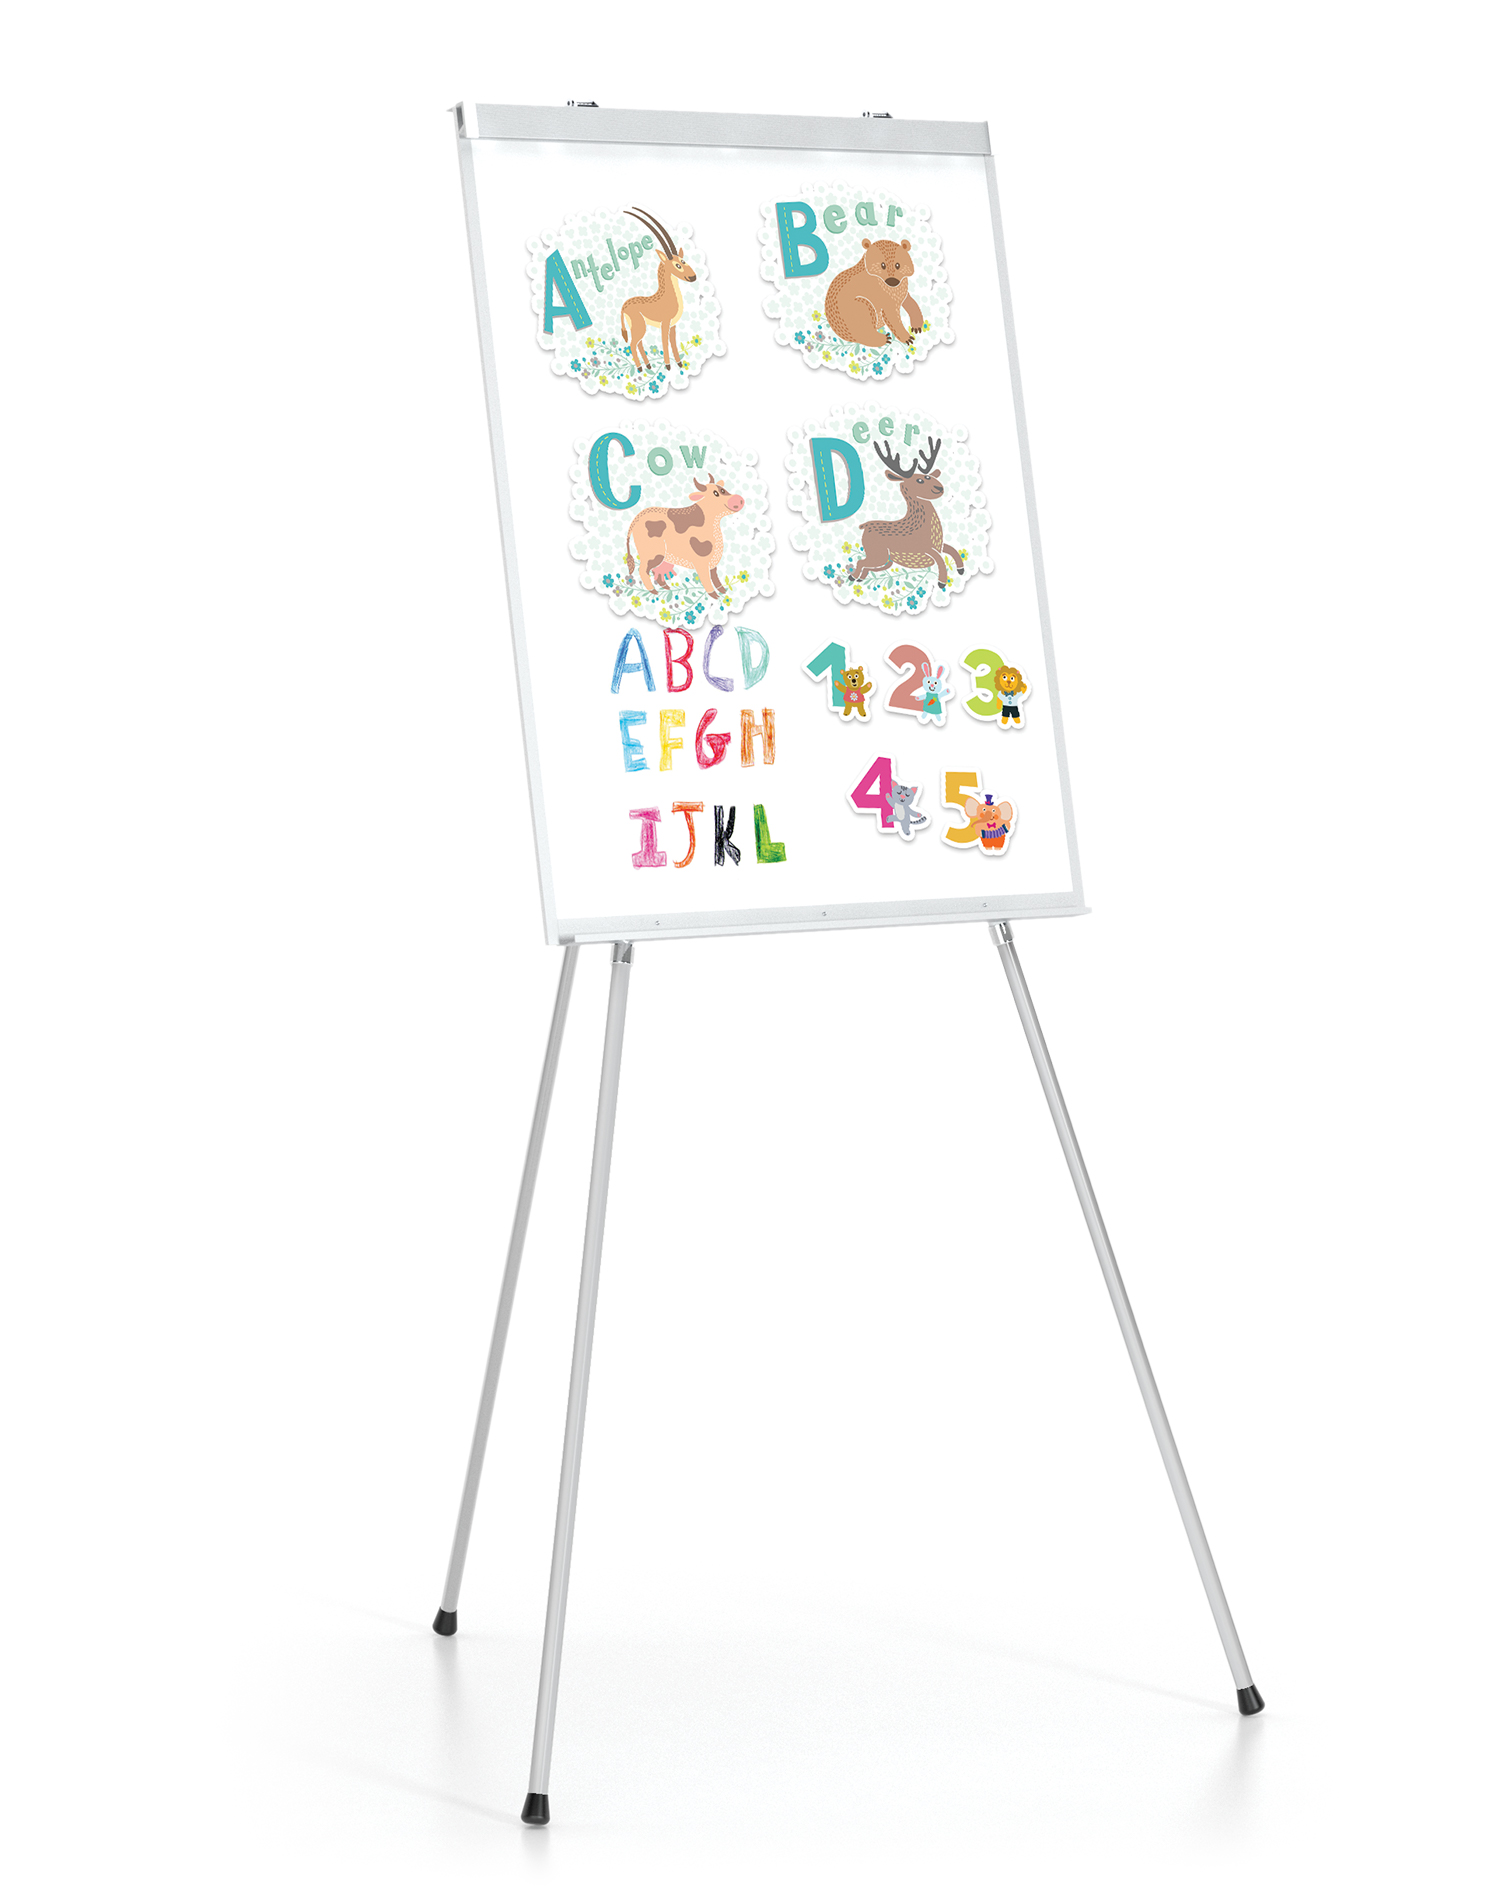 Portable Presentation Floor Easels Lightweight and Durable White Board 3 Leg